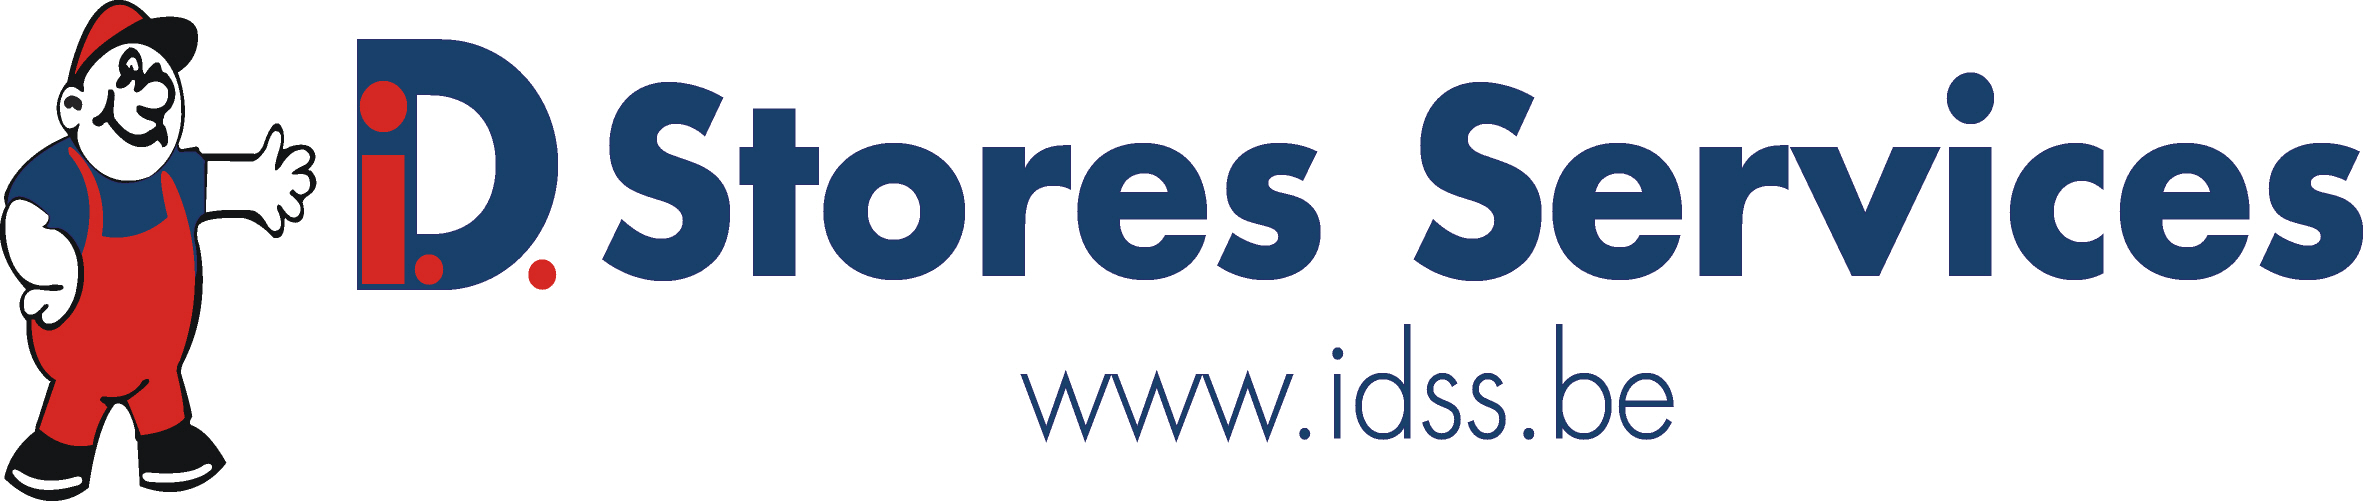 ID STORES SERVICES